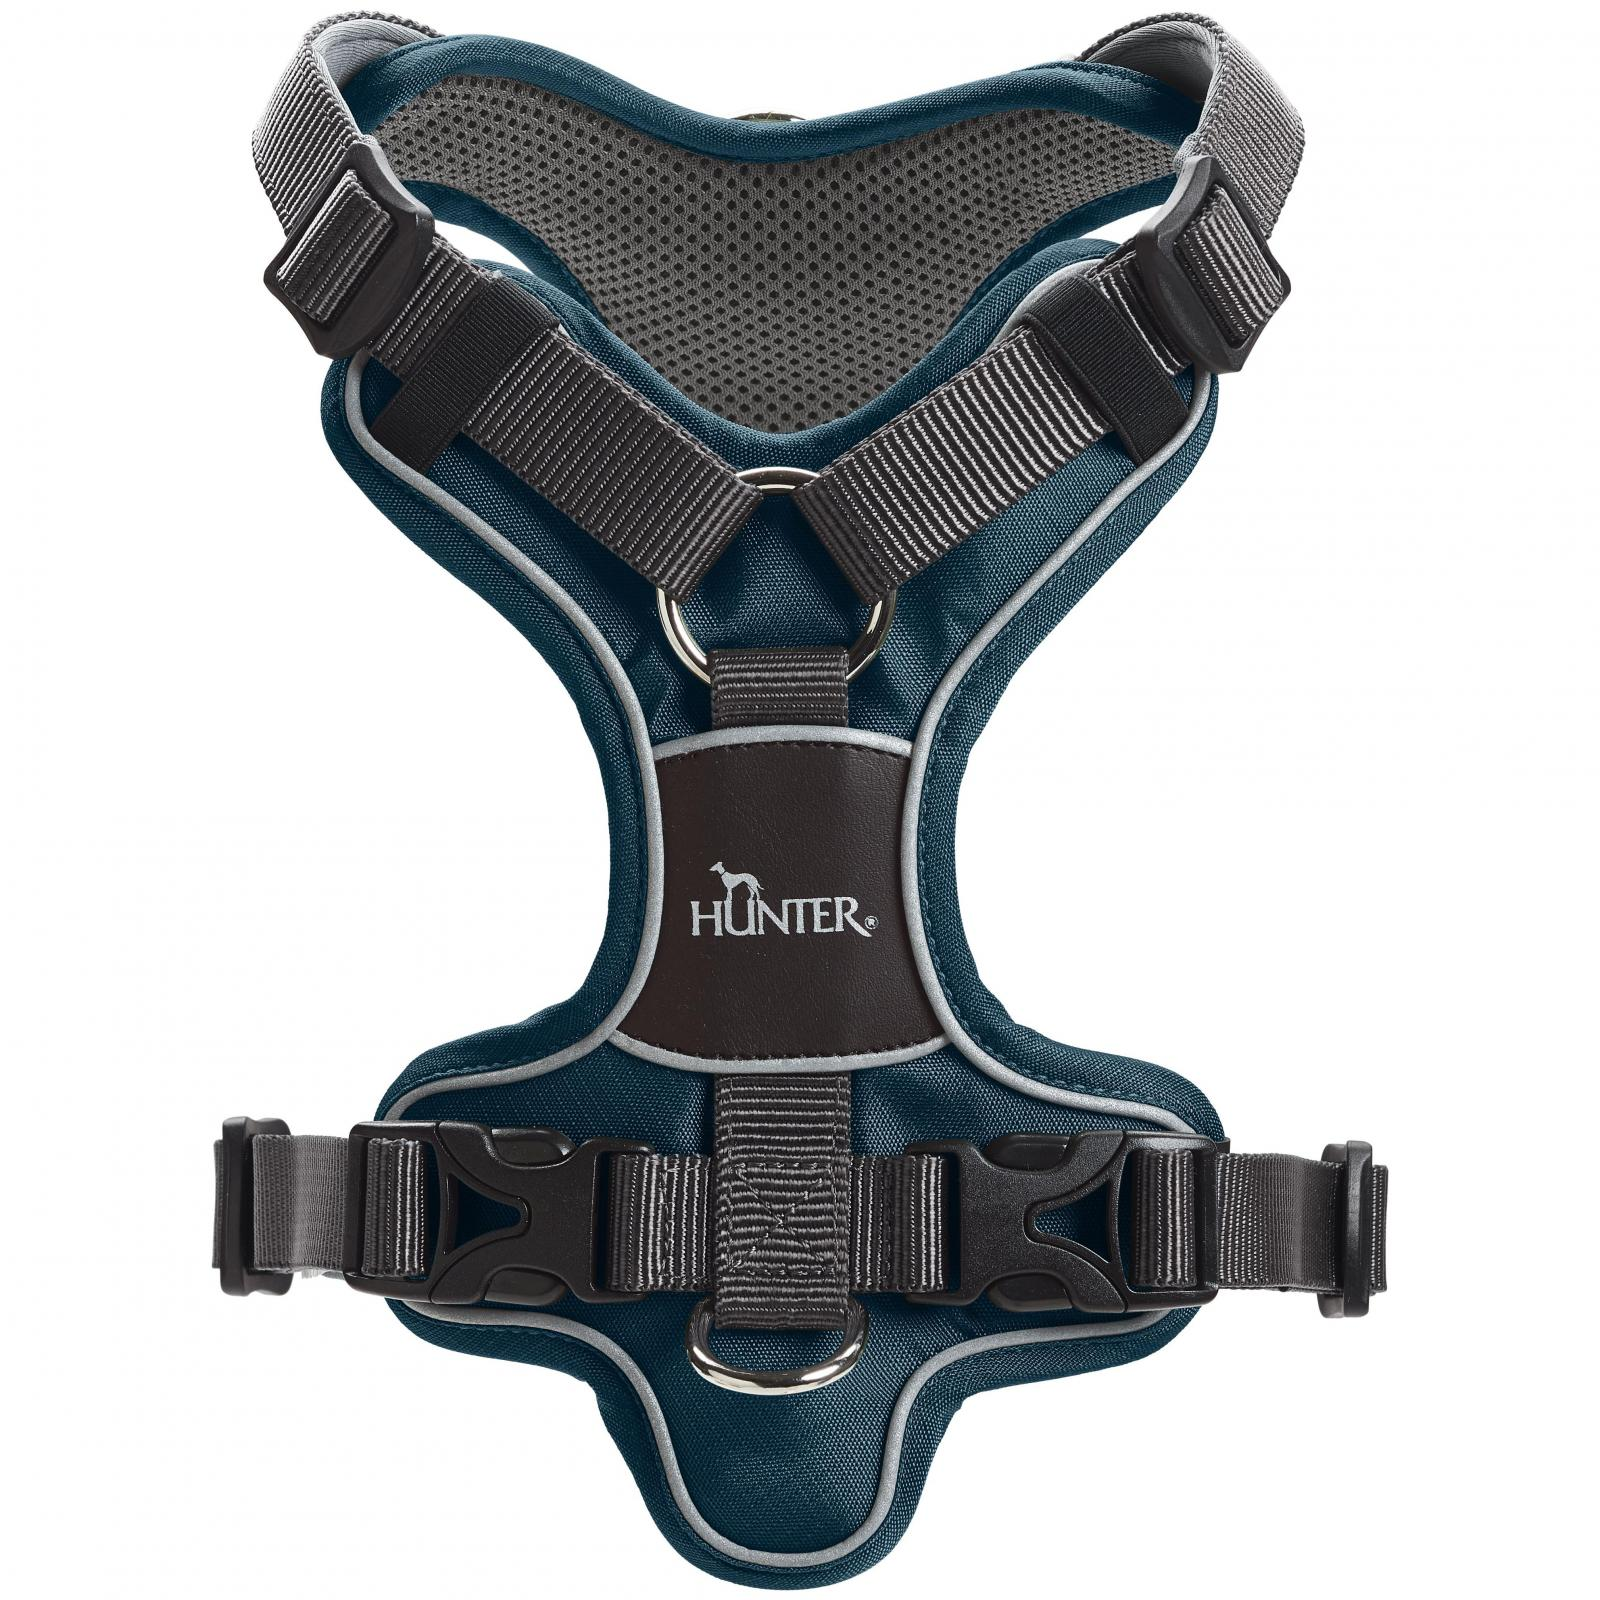 HUNTER Hunter Divo Harness